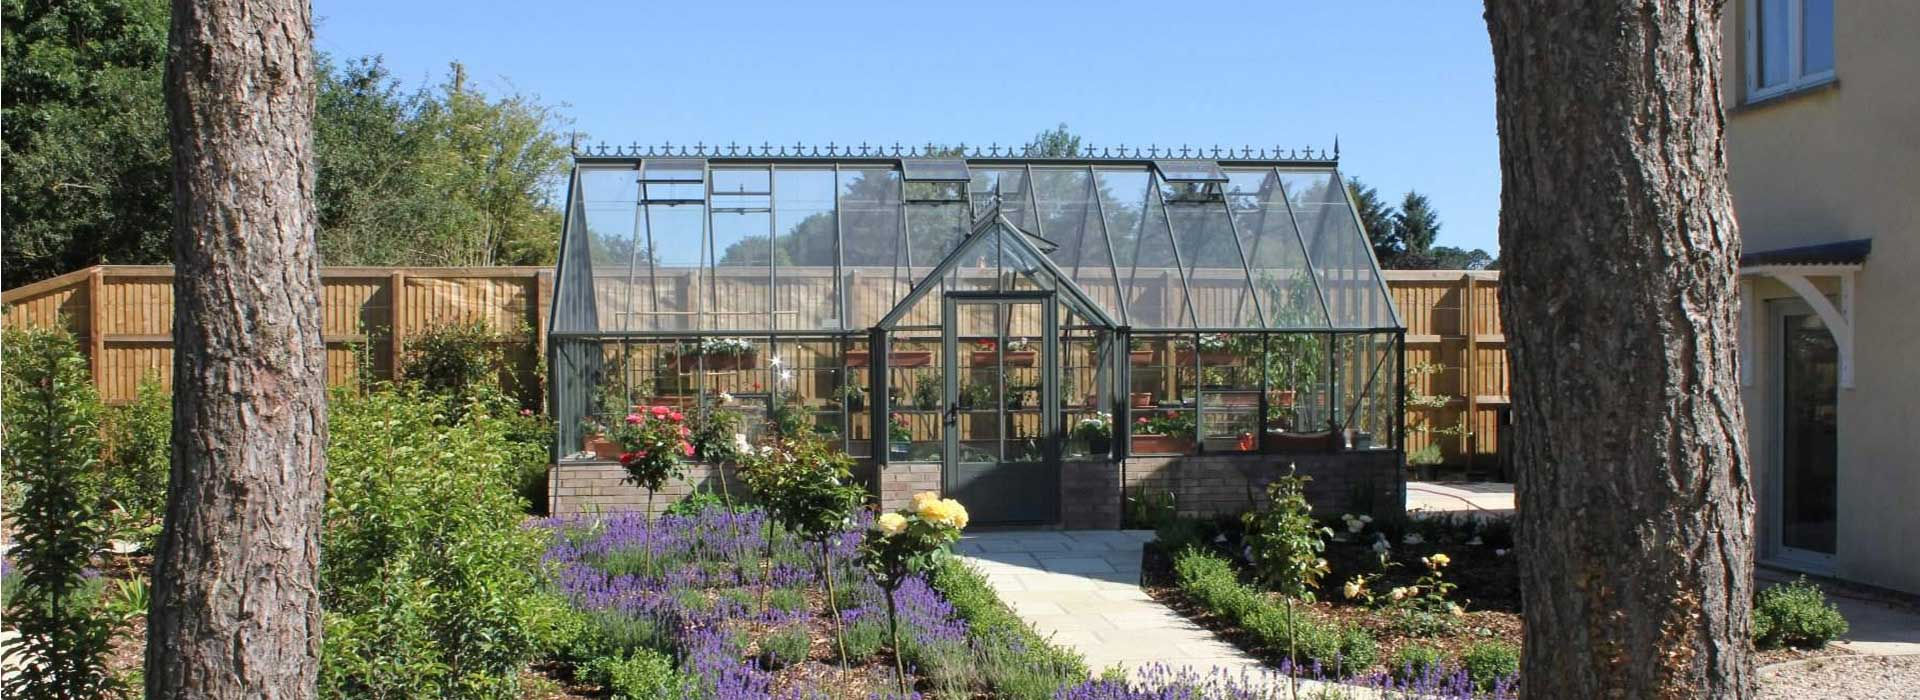 """Robinsons Rookely Dwarf Wall Greenhouses - 14'8"""" wide"""